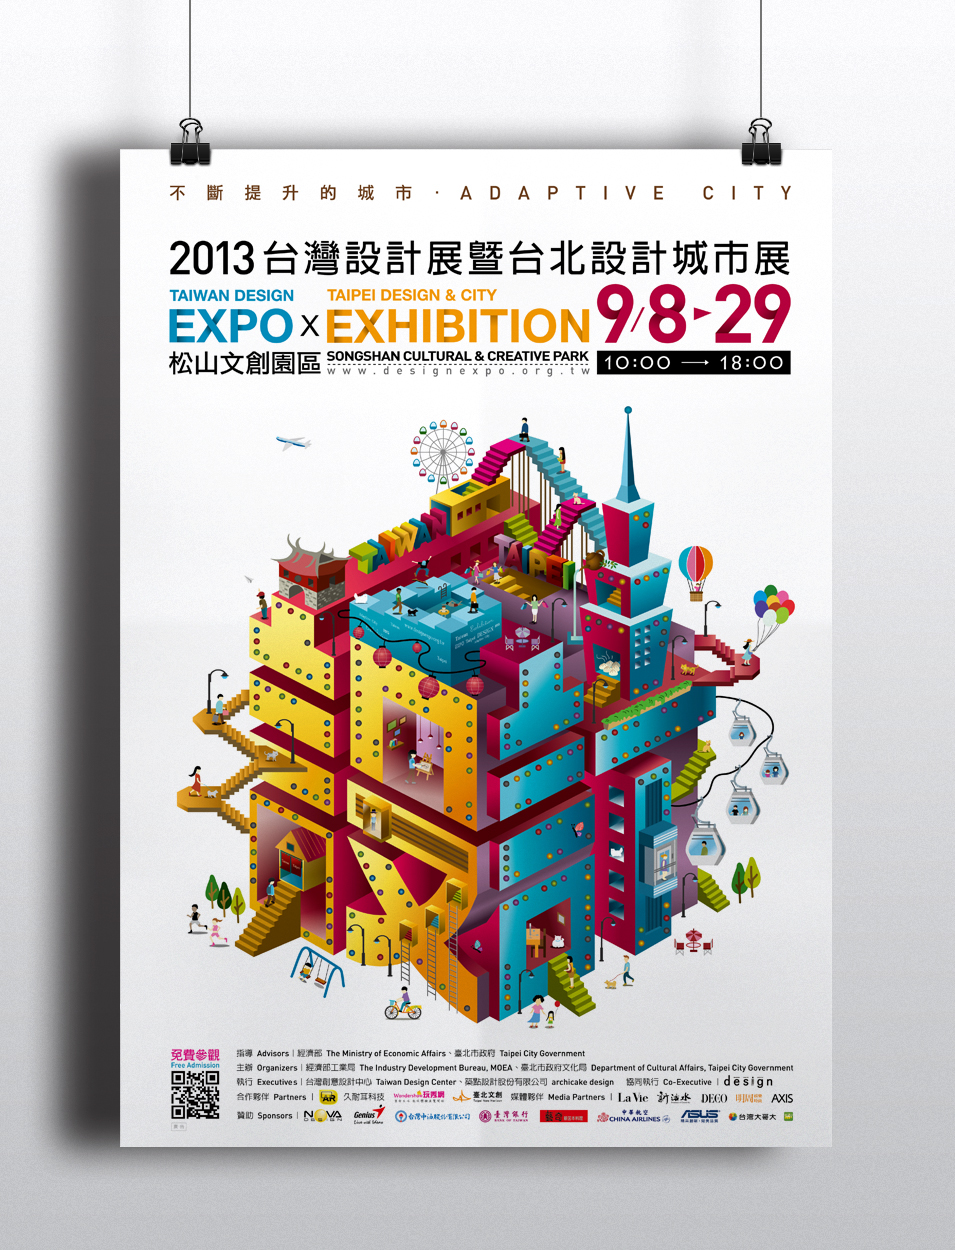 Taiwan Design Expo 2013 About